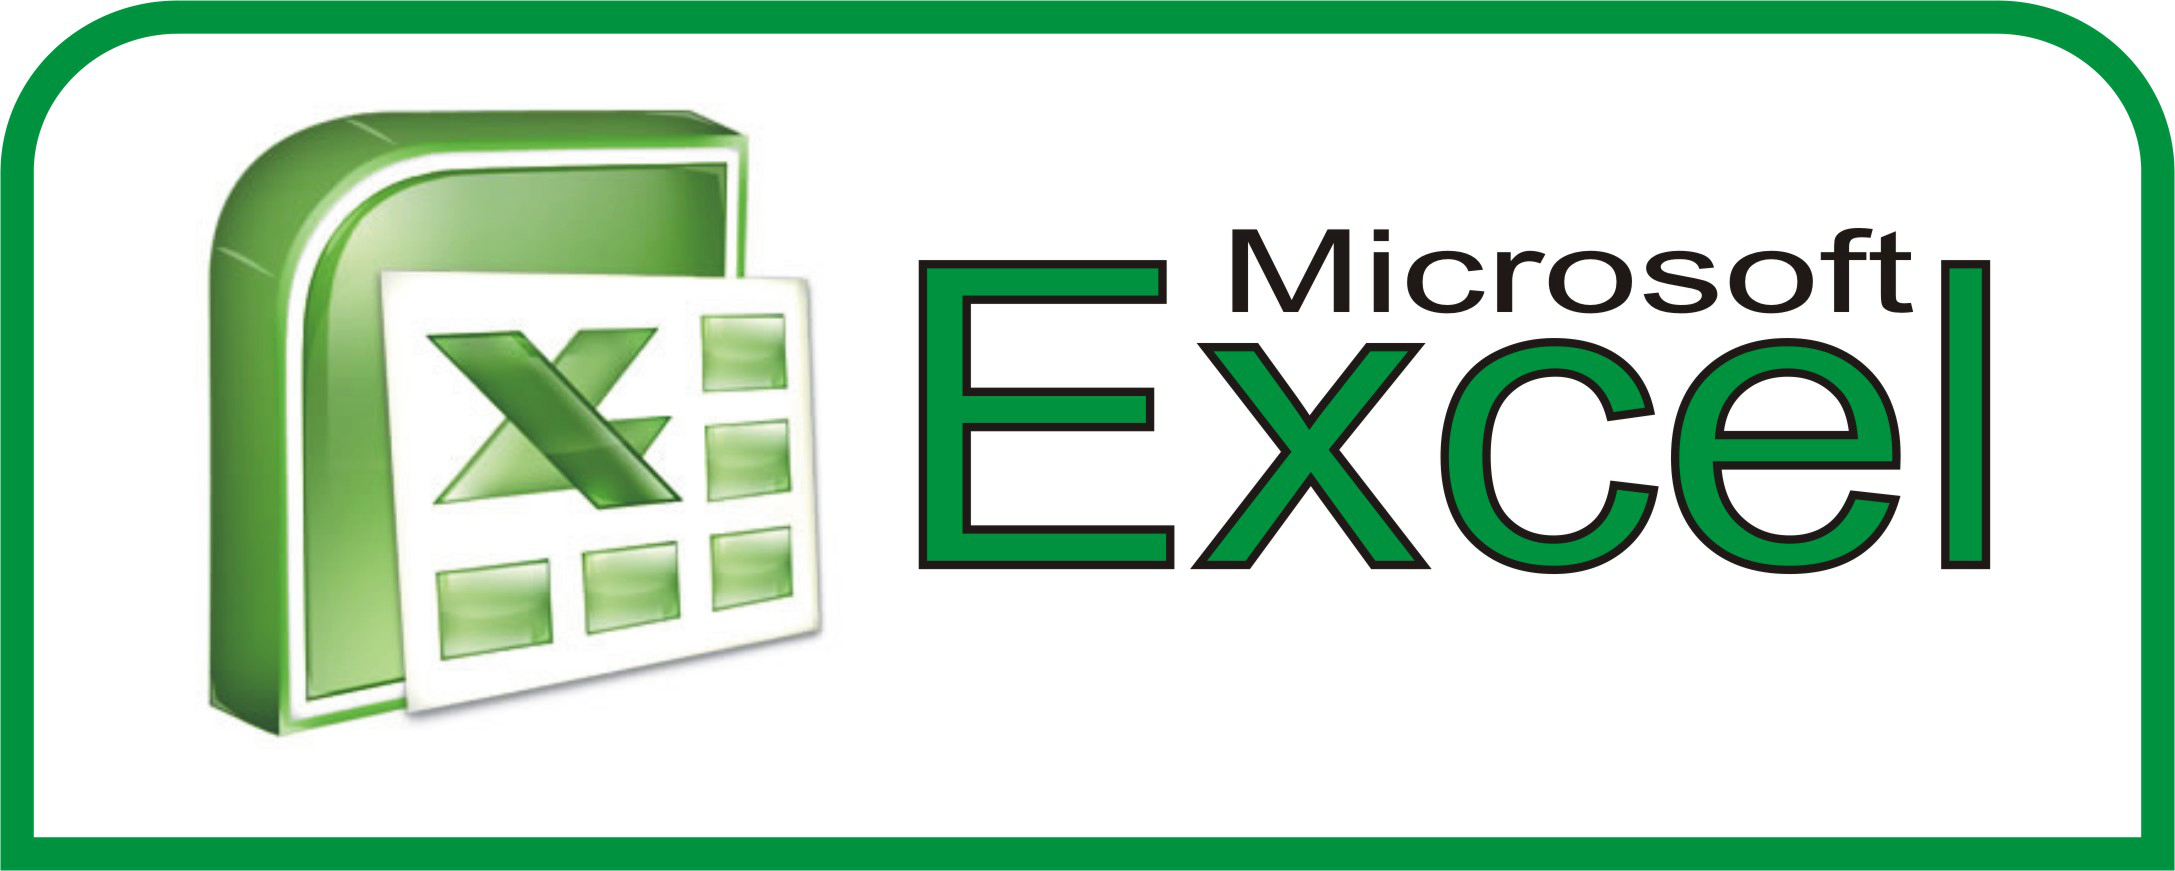 Ediblewildsus  Surprising  Excel Shortcuts You Probably Didnt Know About  Techdissected With Inspiring Excel Left Trim Besides Rate Function Excel Furthermore Combining Columns In Excel With Nice Unmerge Cells In Excel Also Free Excel Project Management Tracking Templates In Addition How To Number Cells In Excel And Combo Chart Excel  As Well As Gano Excel Usa Additionally How To Remove A Password From Excel From Techdissectedcom With Ediblewildsus  Inspiring  Excel Shortcuts You Probably Didnt Know About  Techdissected With Nice Excel Left Trim Besides Rate Function Excel Furthermore Combining Columns In Excel And Surprising Unmerge Cells In Excel Also Free Excel Project Management Tracking Templates In Addition How To Number Cells In Excel From Techdissectedcom